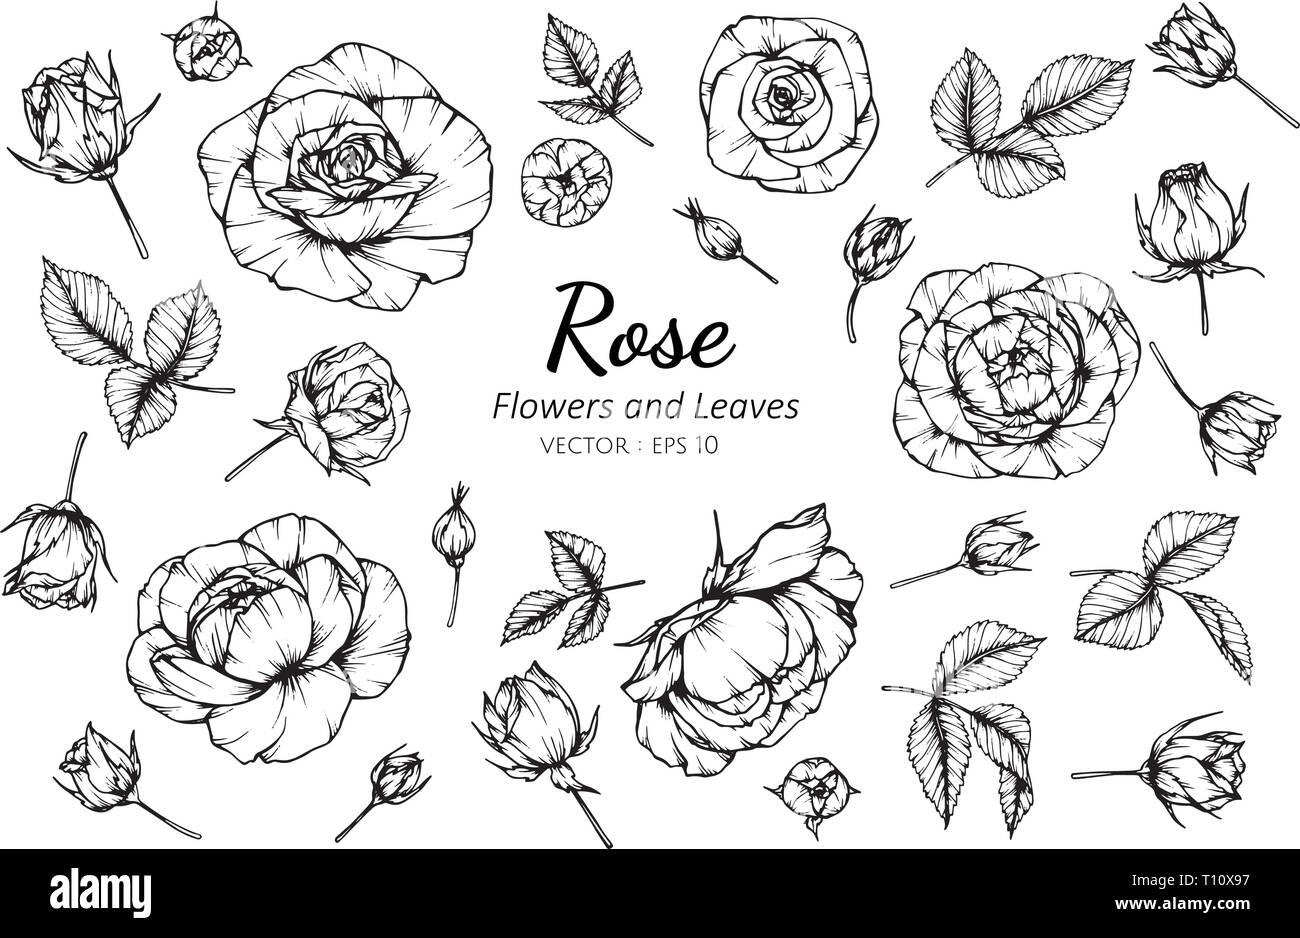 Collection Set Of Rose Flower And Leaves Drawing Illustration For Pattern Logo Template Banner Posters Invitation And Greeting Card Design Stock Vector Image Art Alamy